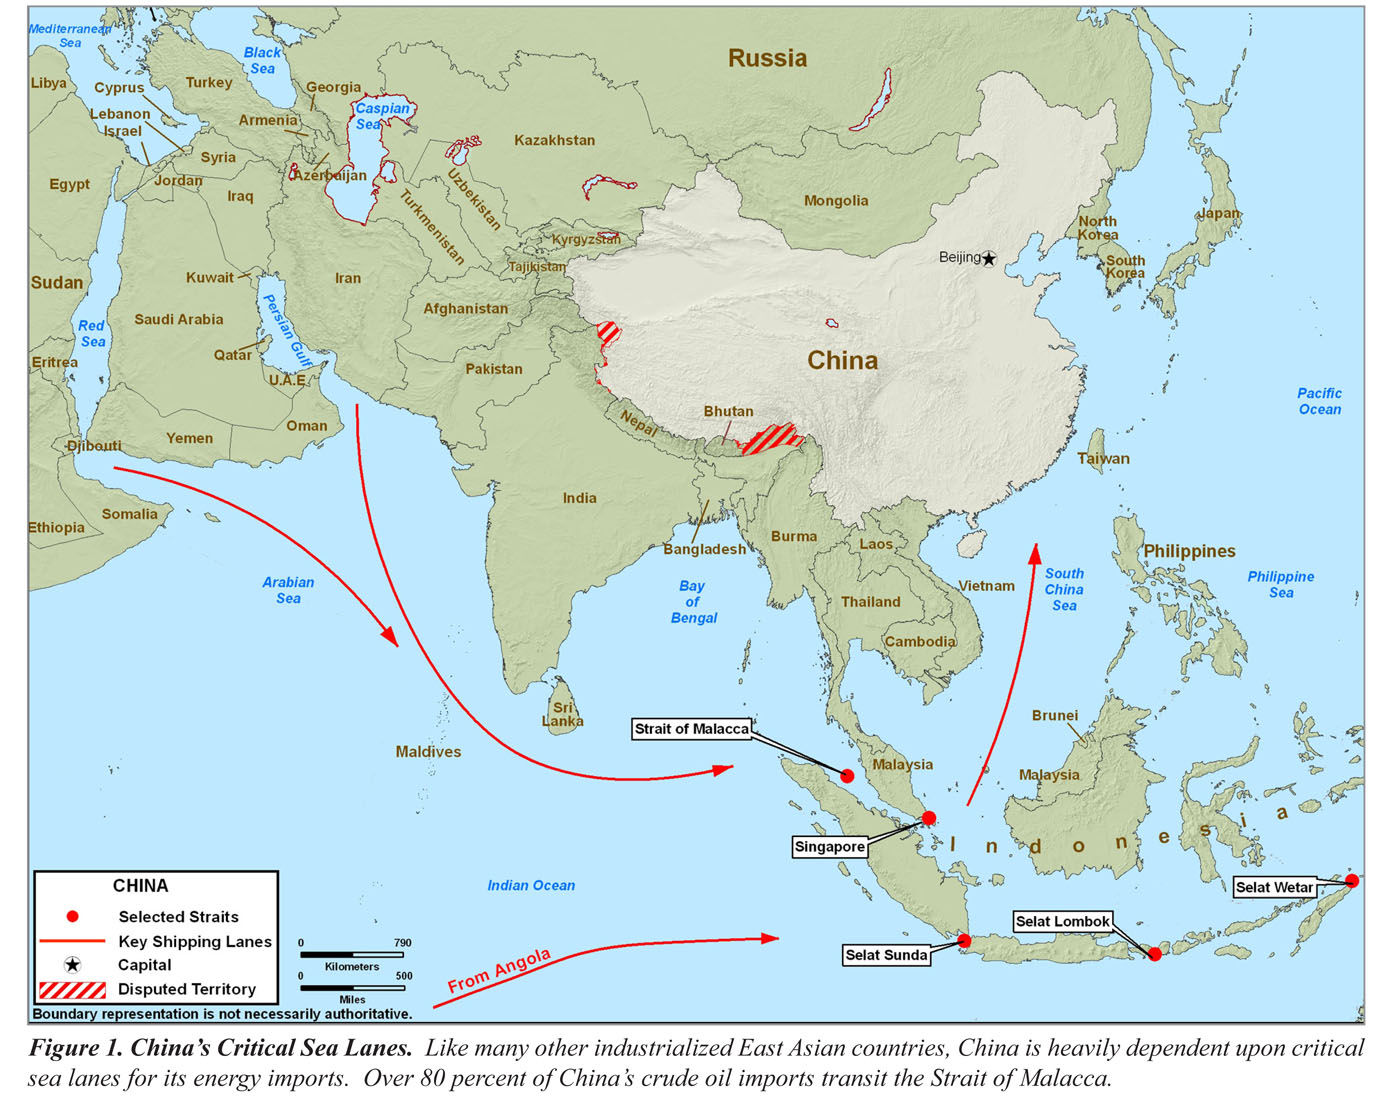 http://www.lib.utexas.edu/maps/middle_east_and_asia/china_critical_sea_lanes_2009.jpg